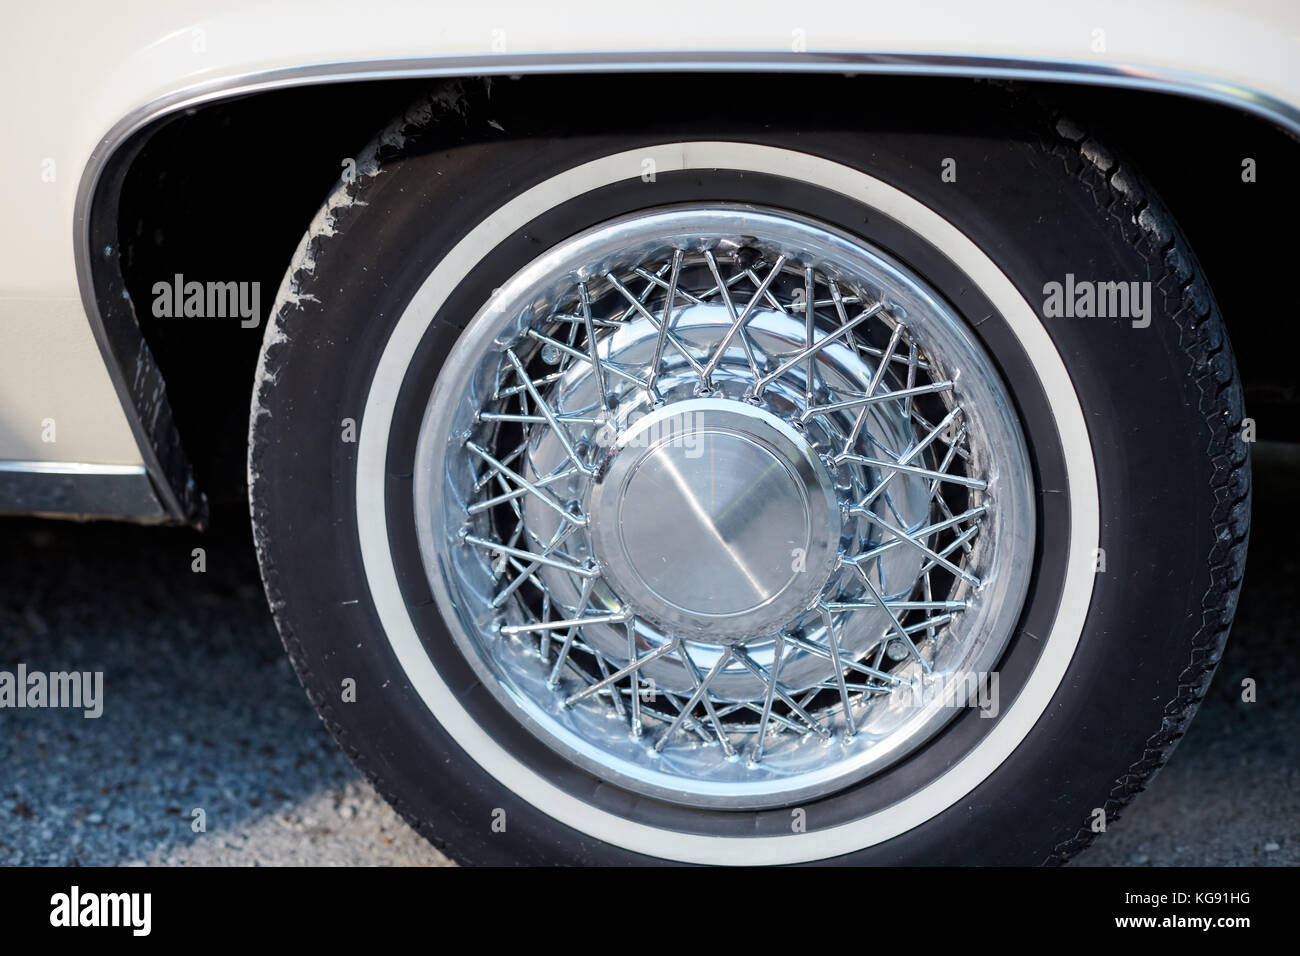 a close up of shiny vintage style chrome car wheels with spokes stock image